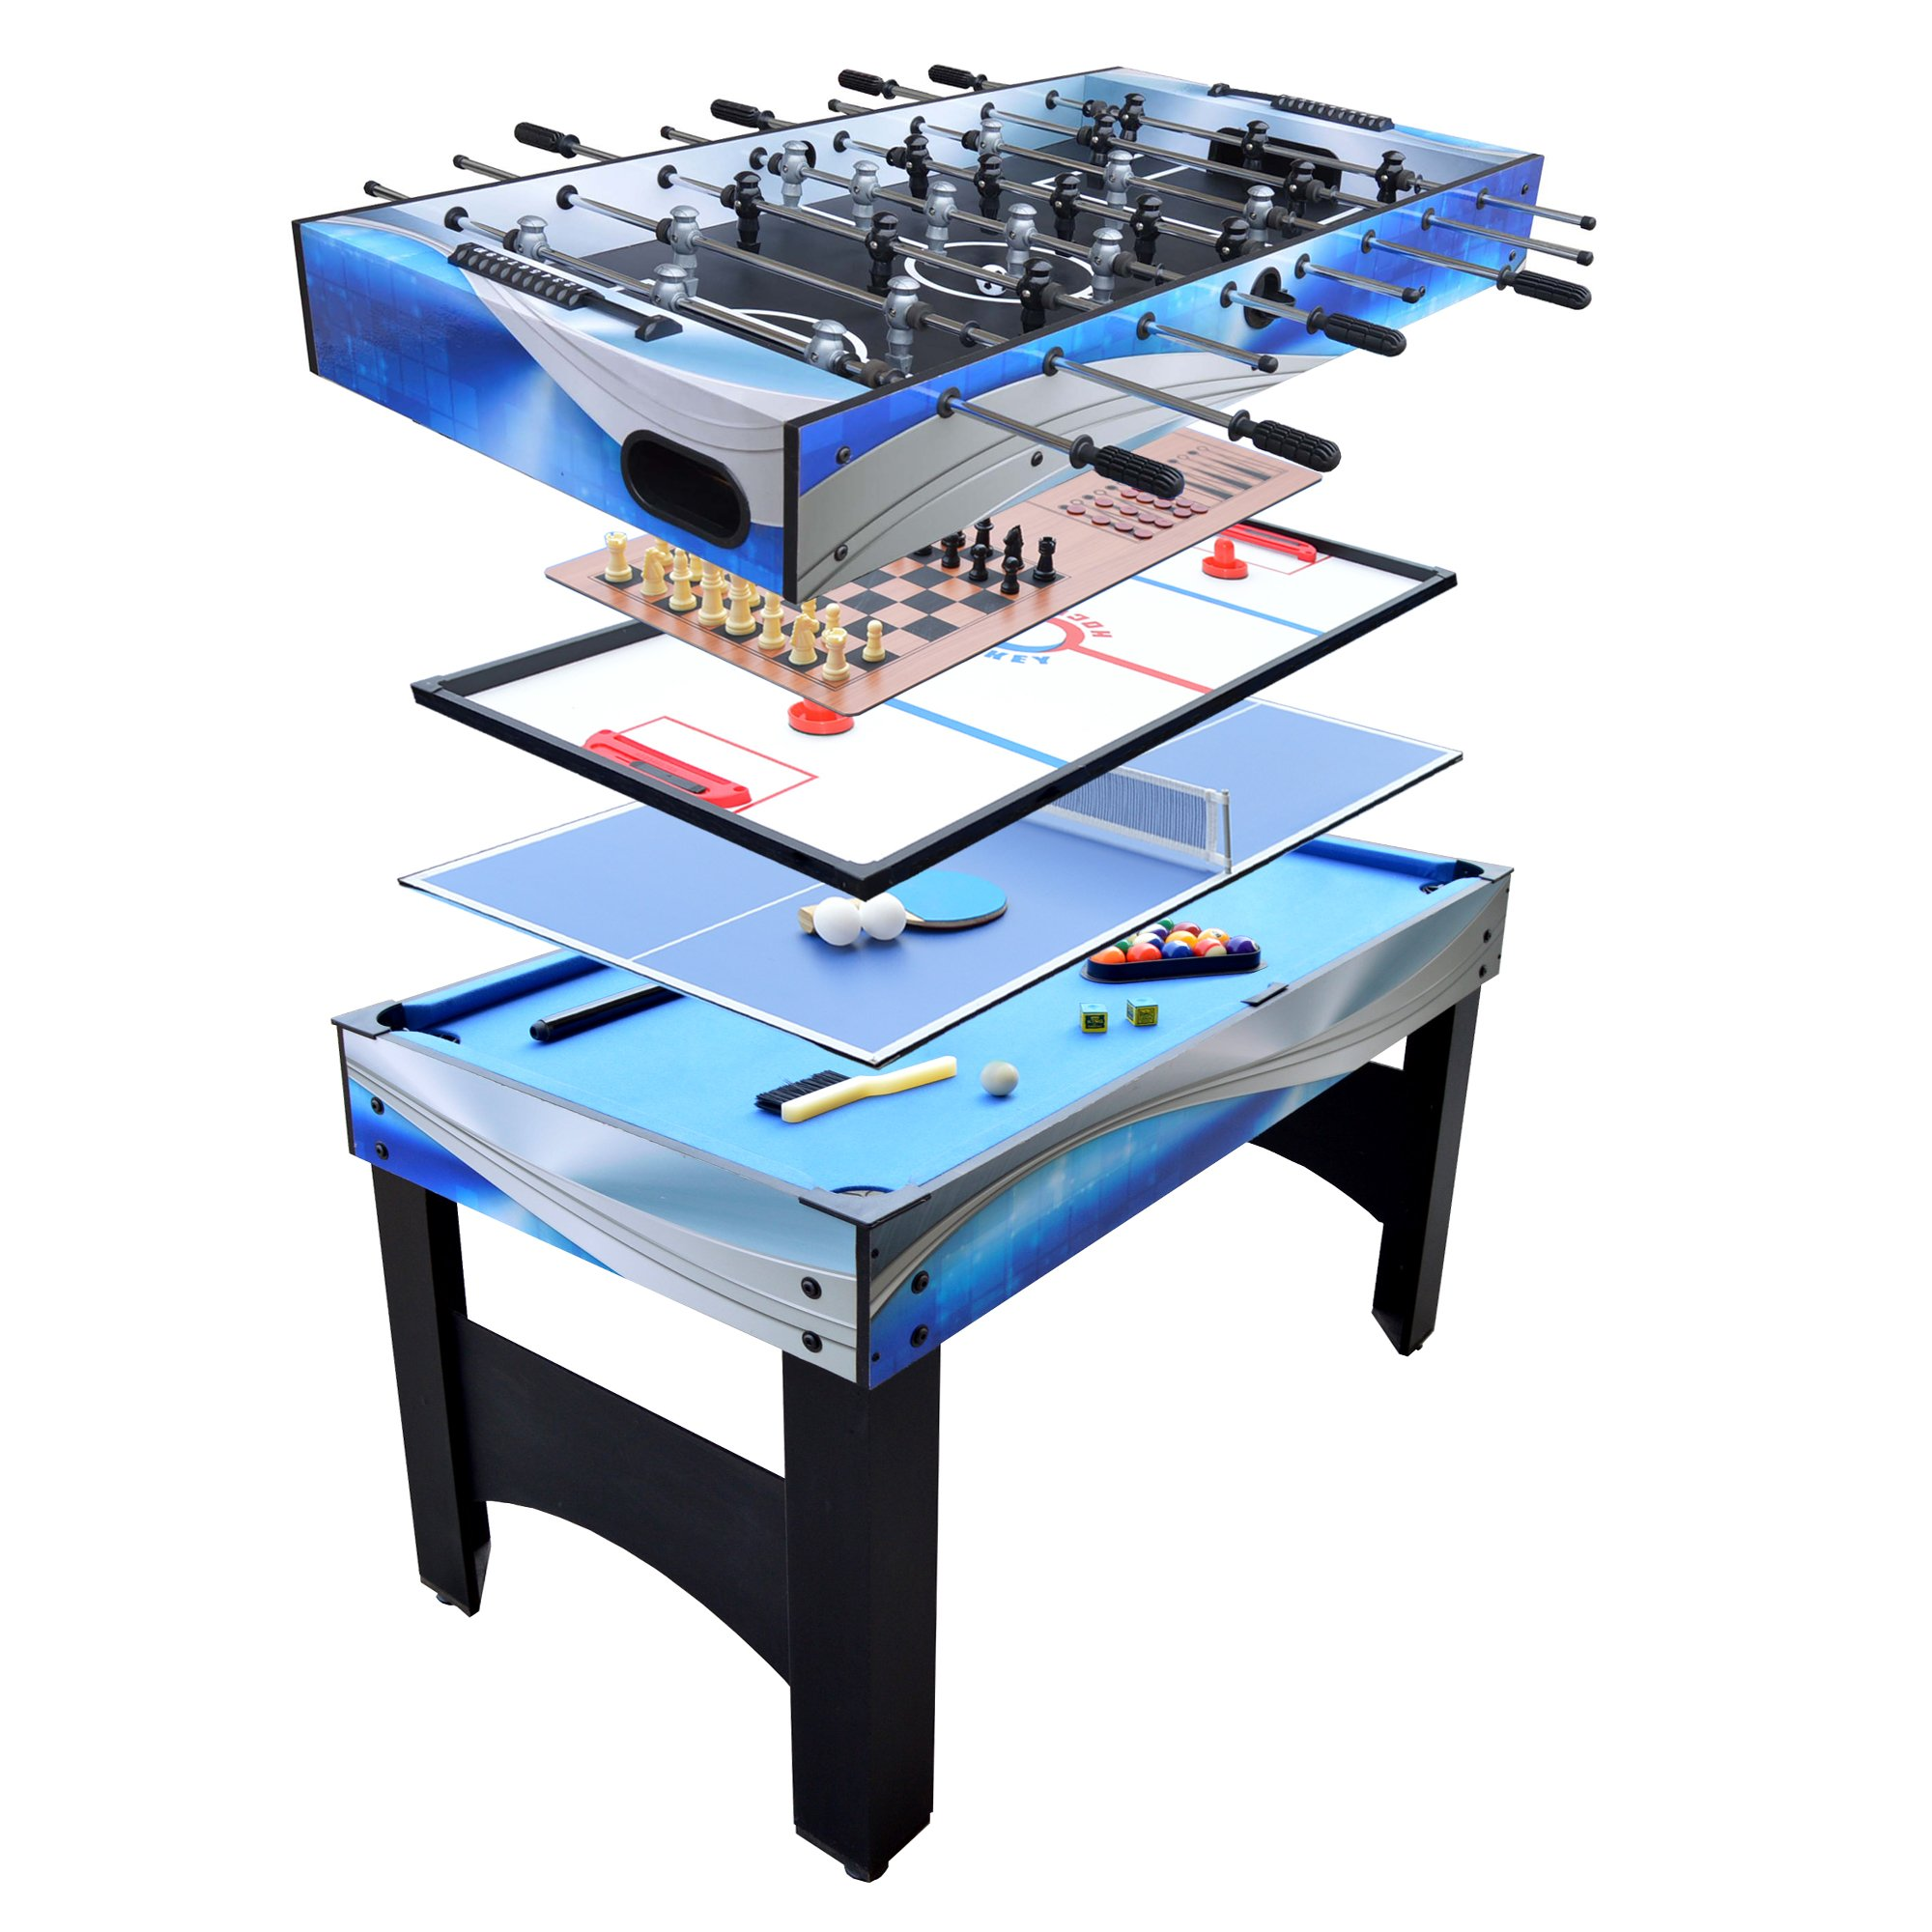 Hathaway Matrix 54'' 7-in-1 Multi-Game Table by Hathaway